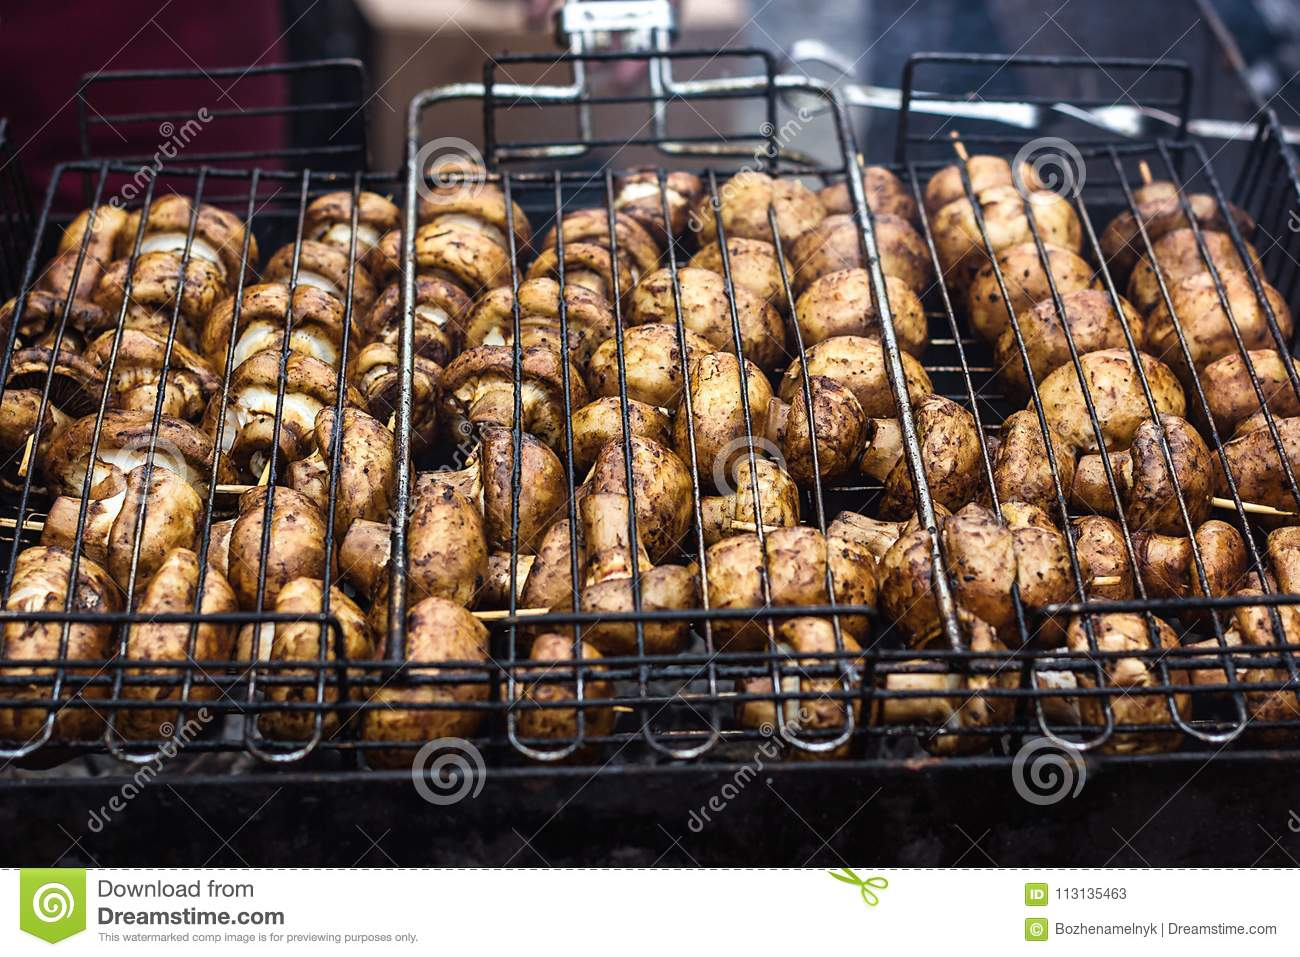 a94103cd2e4b Champignon white mushrooms grilled on grill or BBQ steam and small drops of  water. Cooking